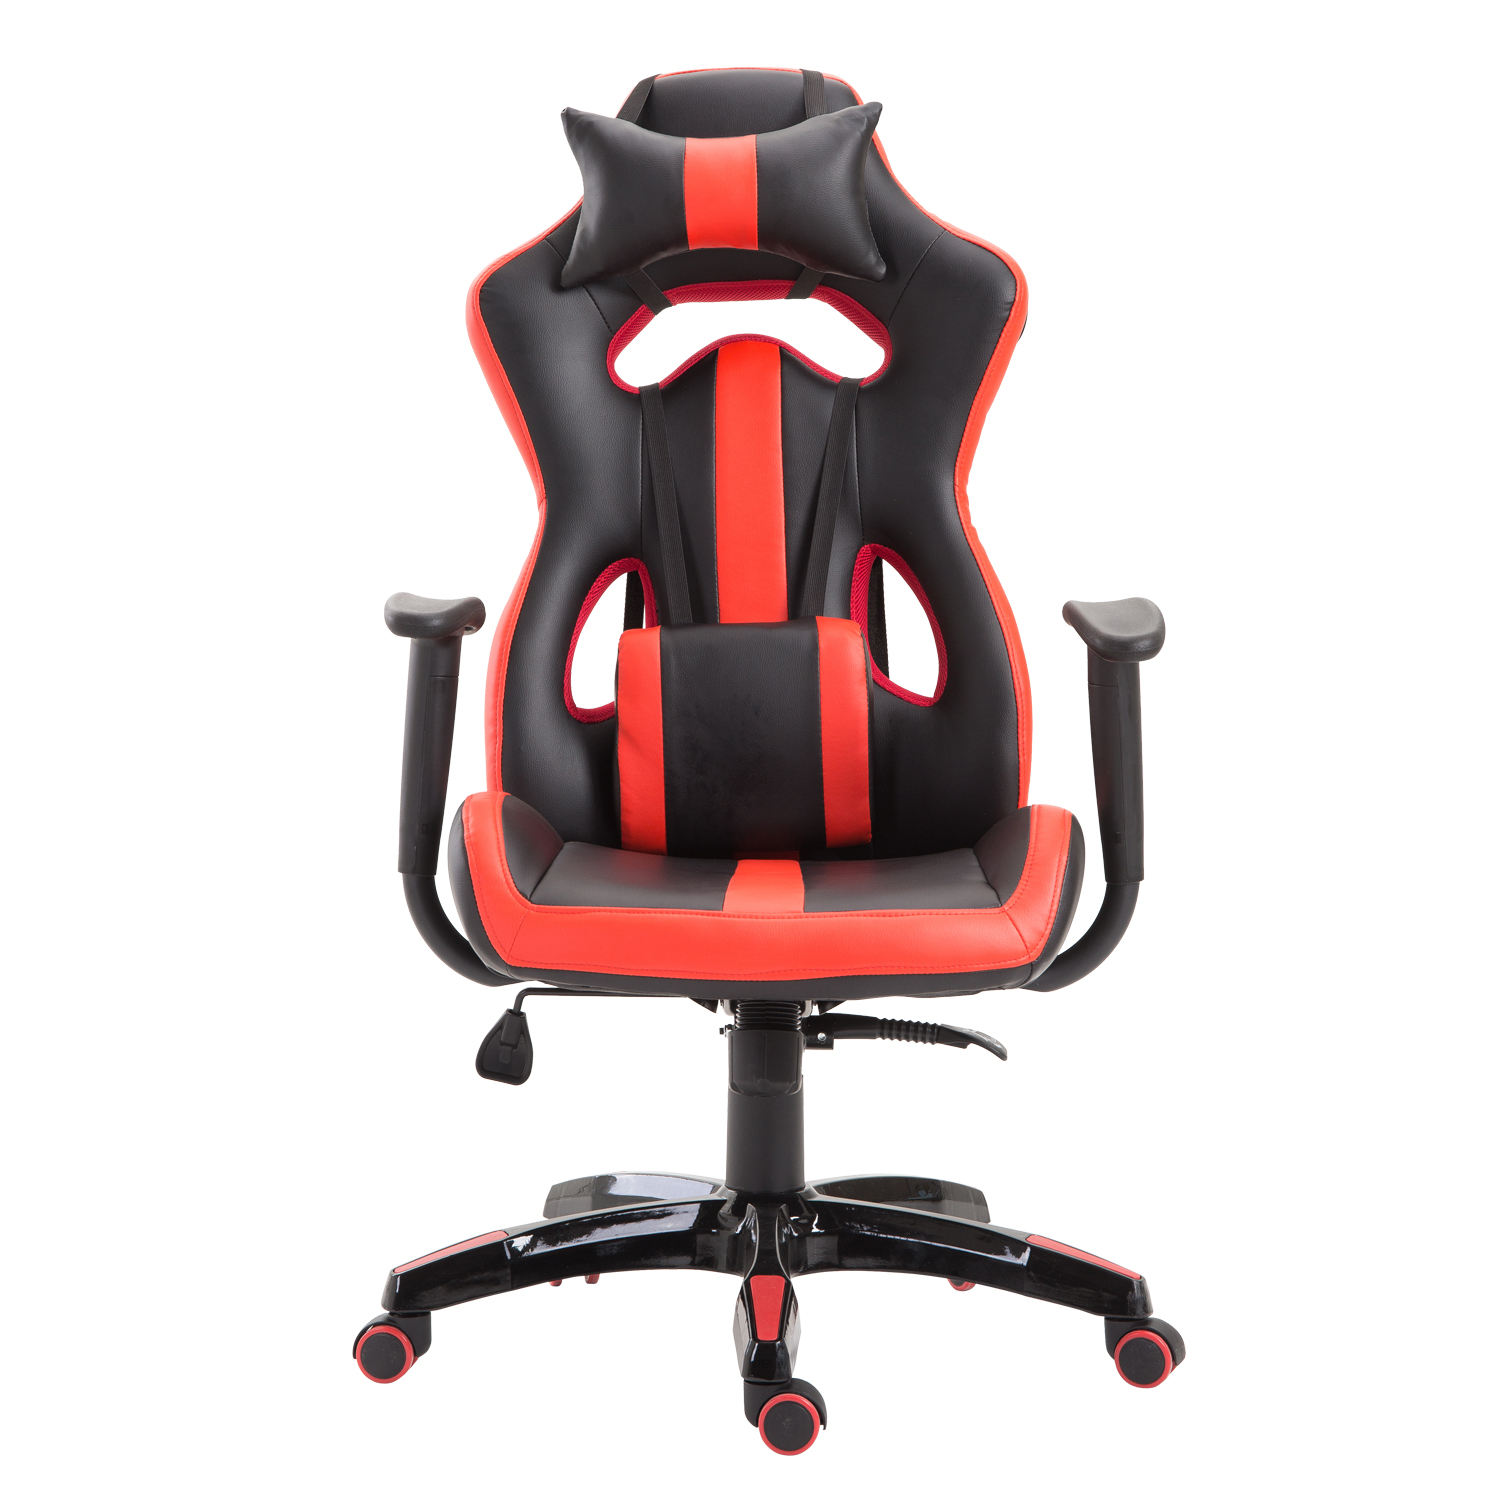 High-Back-Gaming-Chair-Ergonomic-Computer-Chair-PU-Leather-Swivel-Recliner